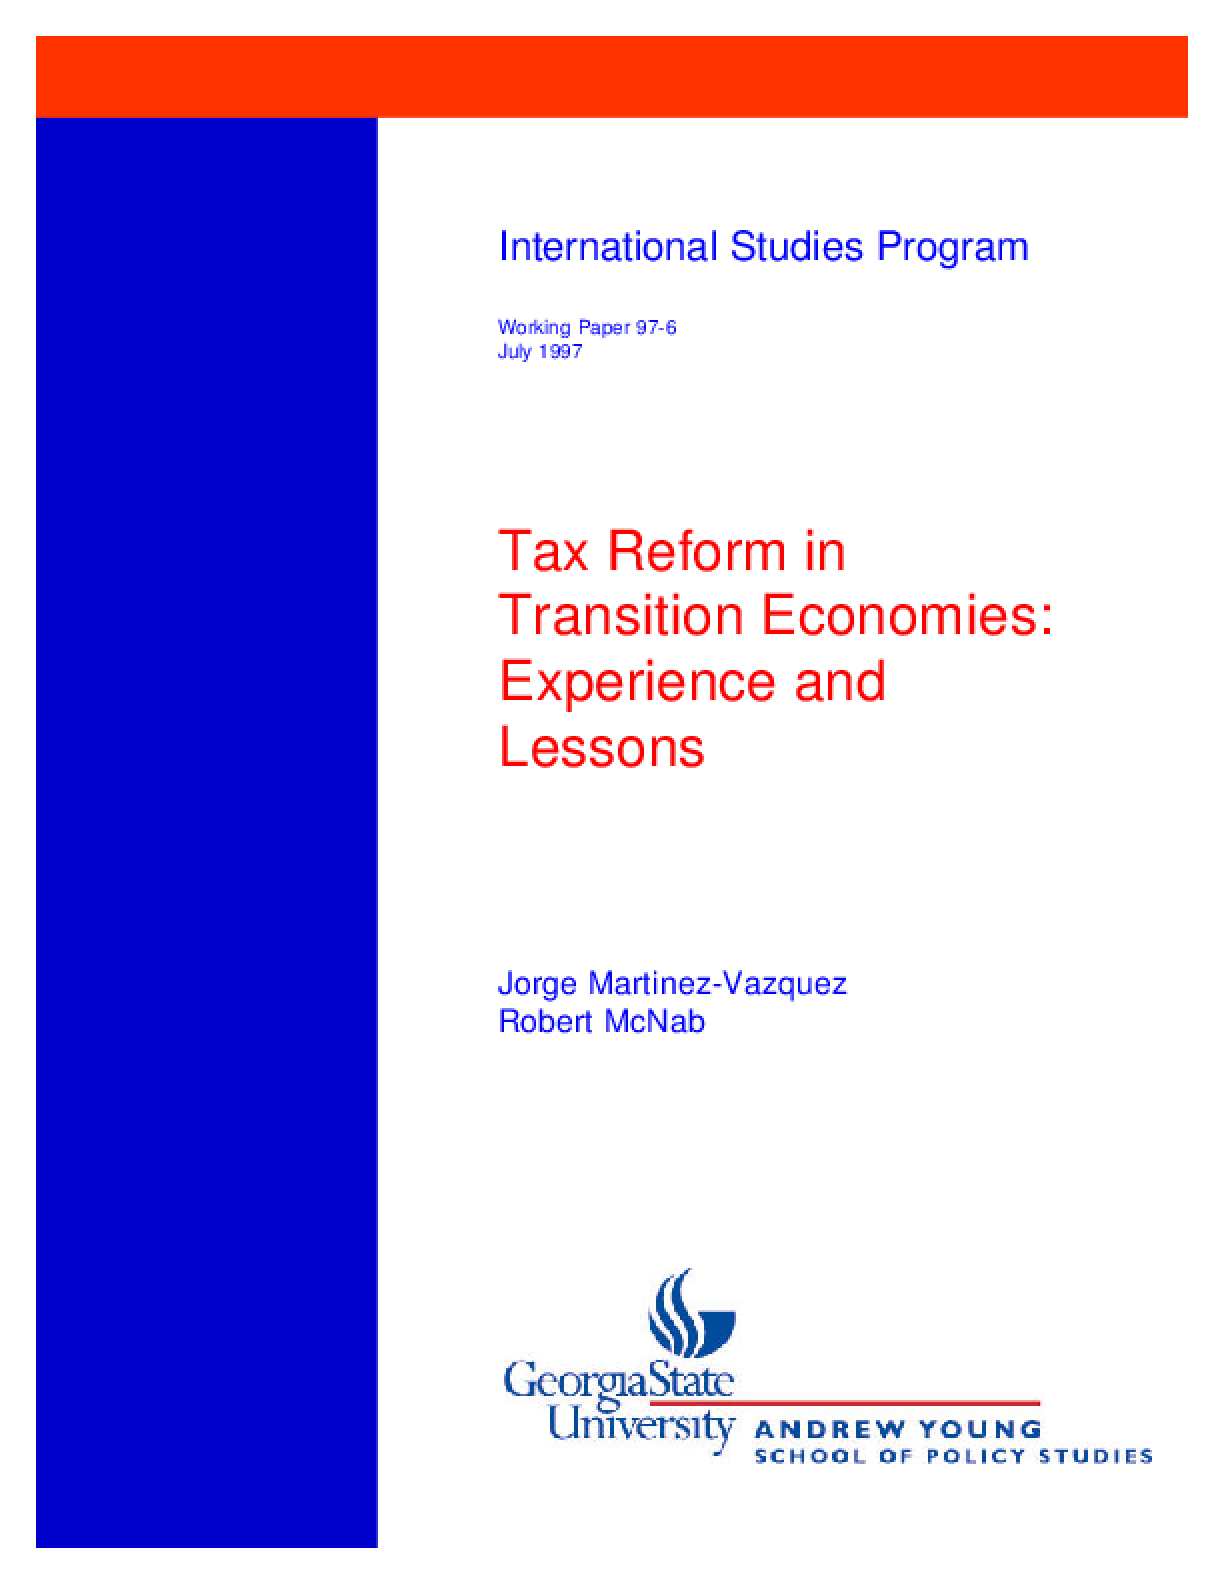 Tax Reform in Transition Economies: Experiences and Lessons